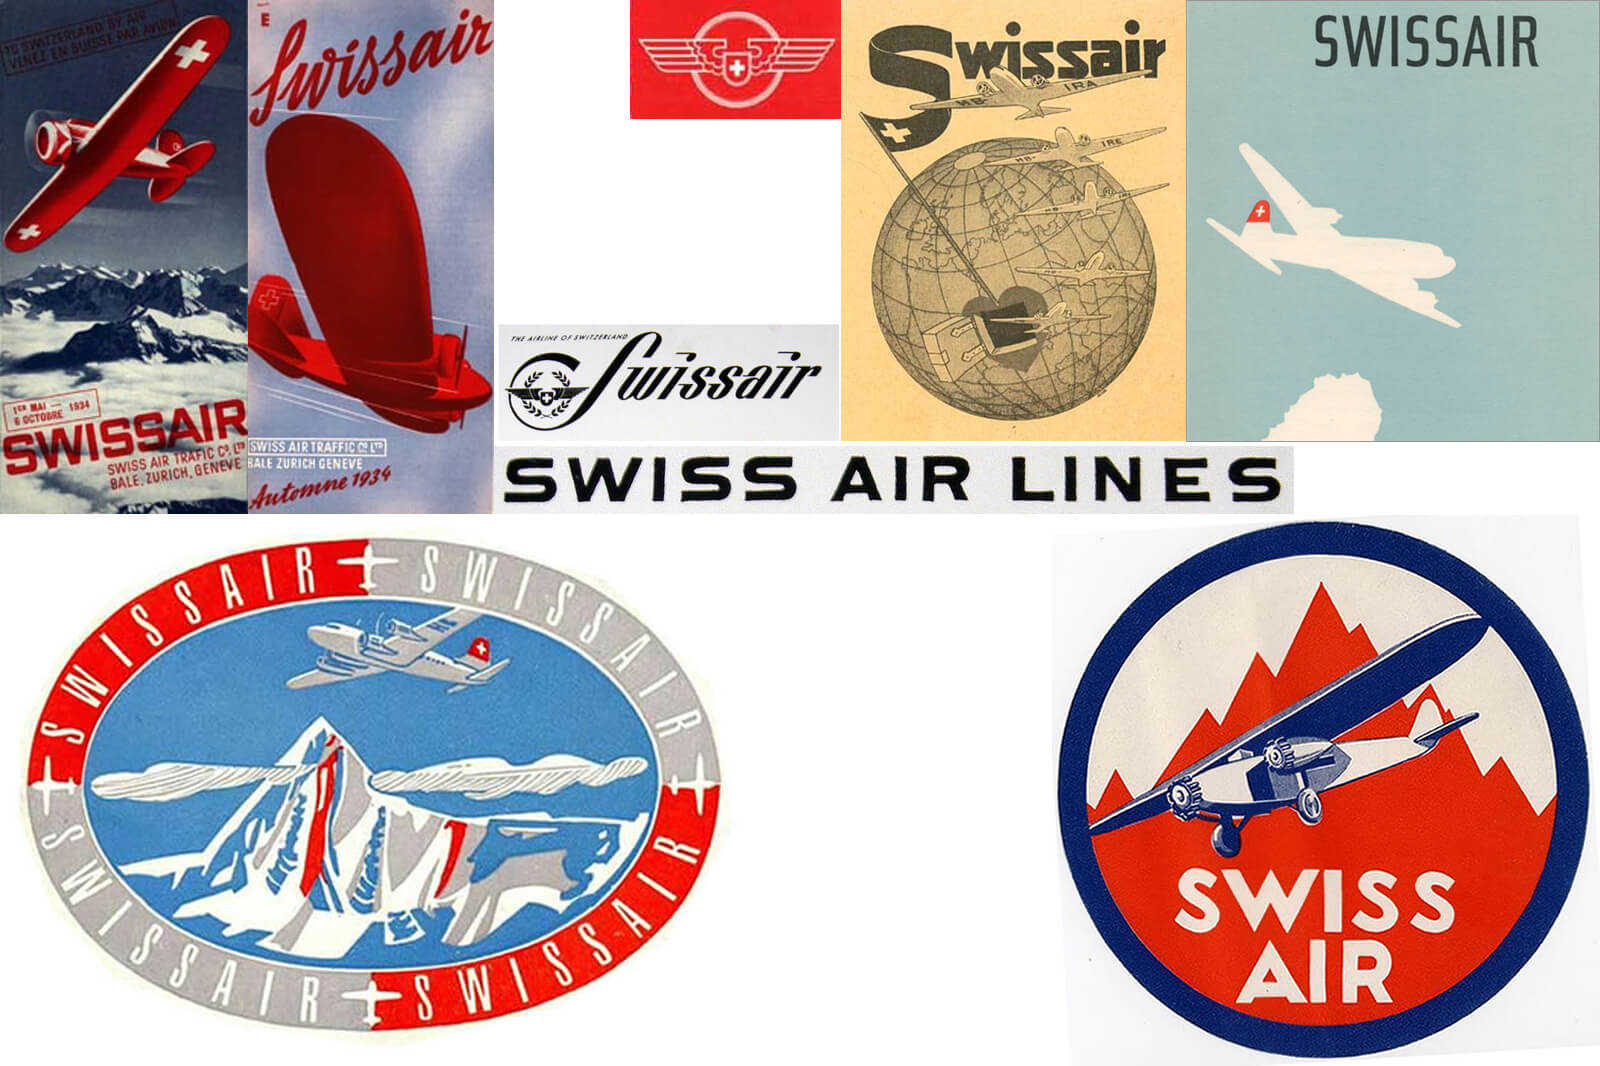 Swissair Posters and Logos - Early Swissair Logos